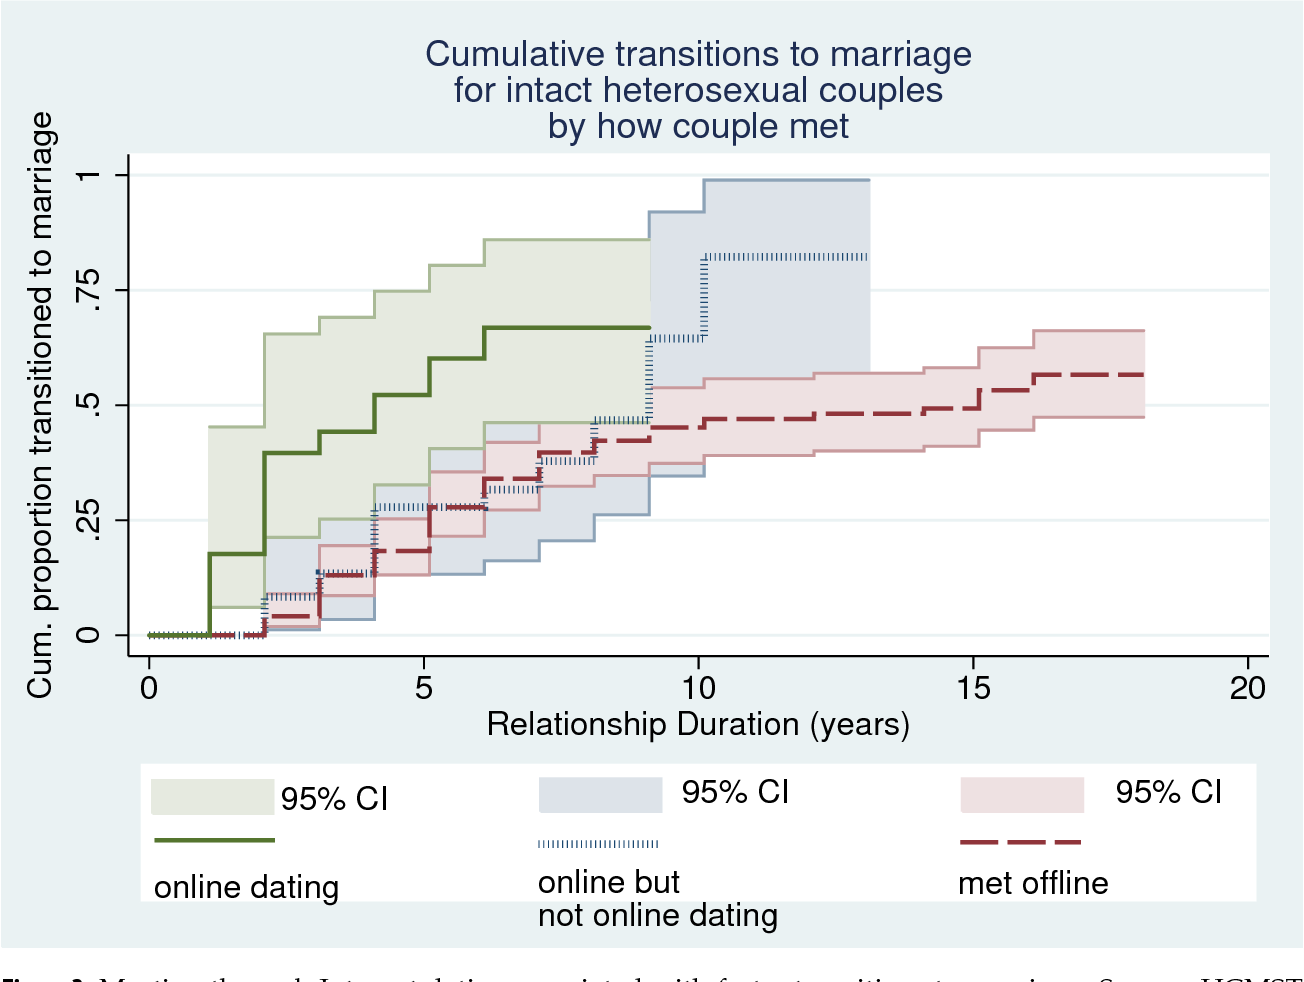 finkel online dating a critical analysis from the perspective of psychological science